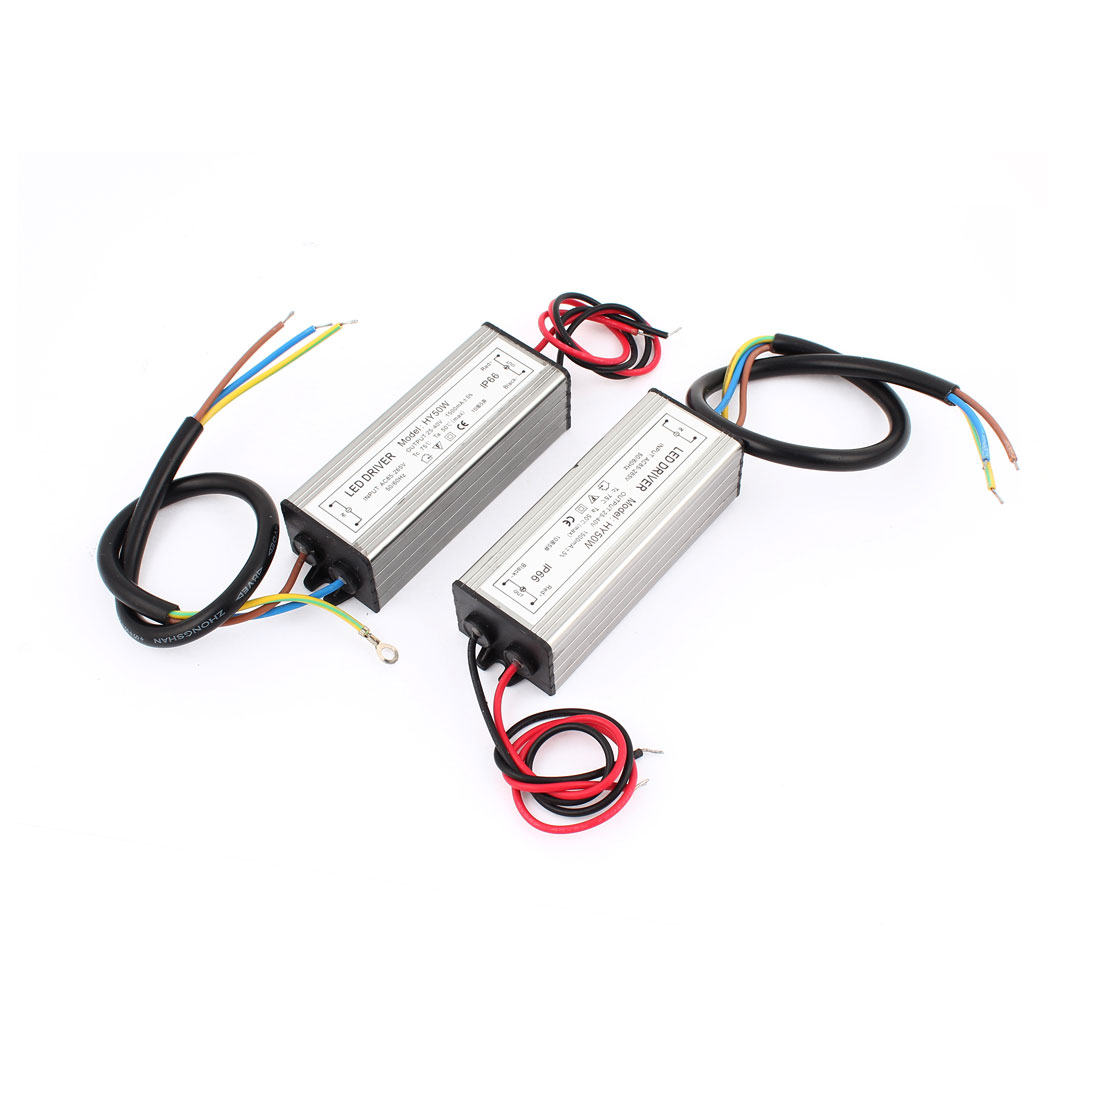 2 Pcs AC 85-265V DC 25-40V 1500mA 50W Waterproof Power Supply for LED Lighting